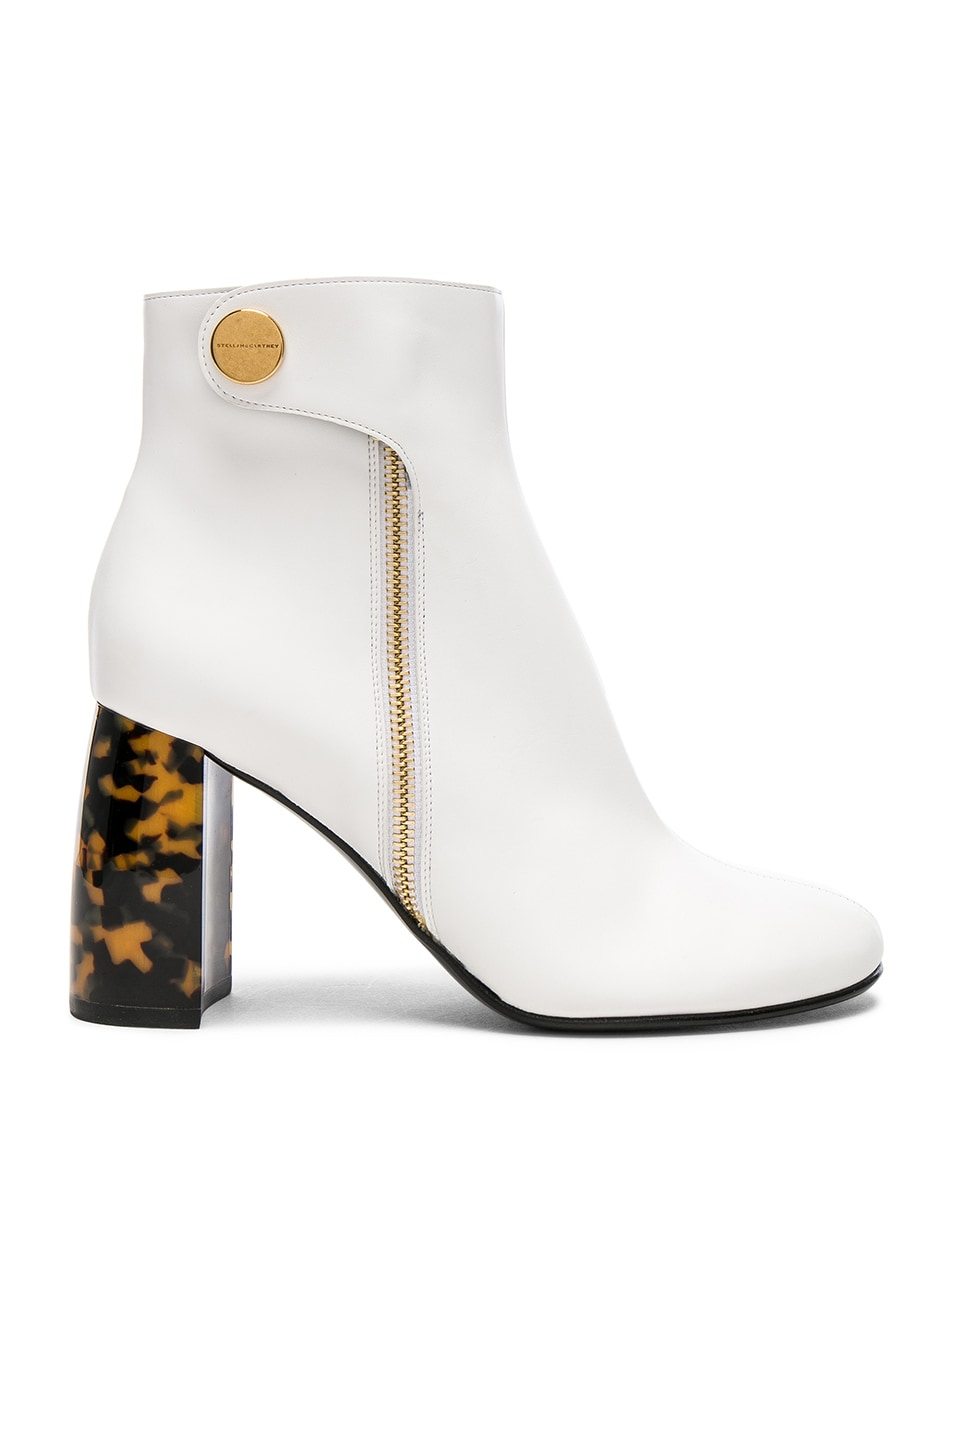 Image 1 of Stella McCartney Zip Ankle Boots in White